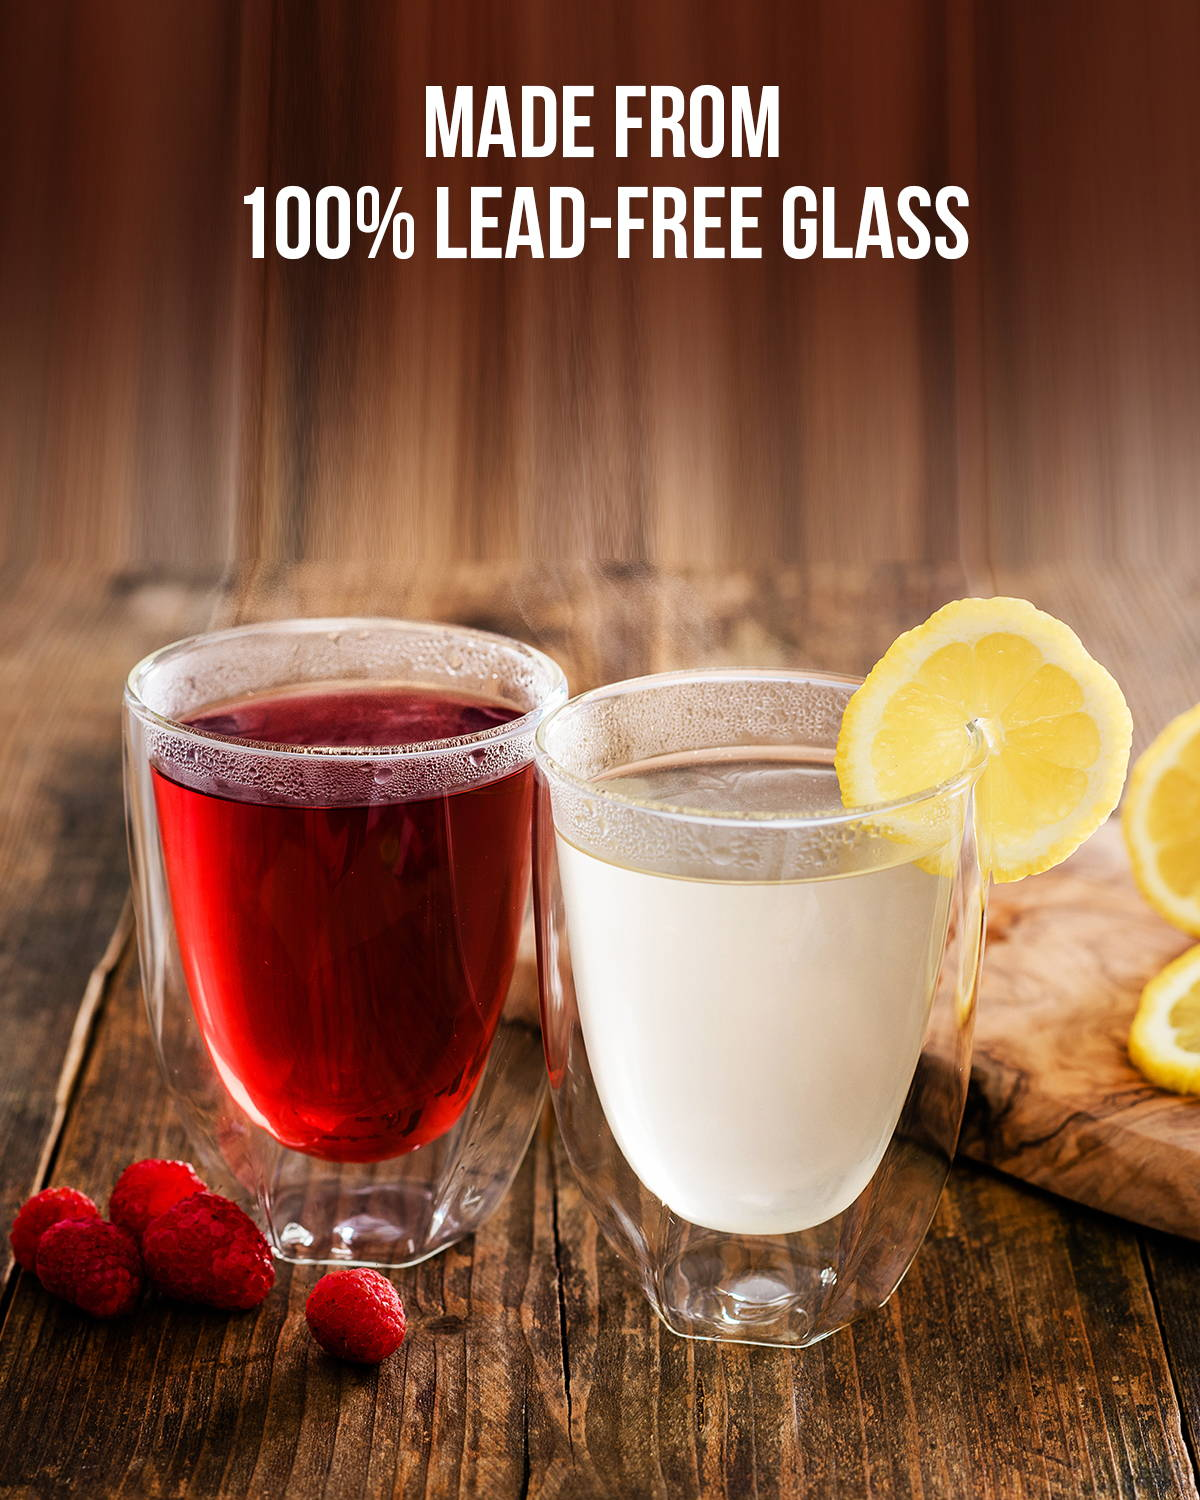 Made from 100% Lead-Free Glass